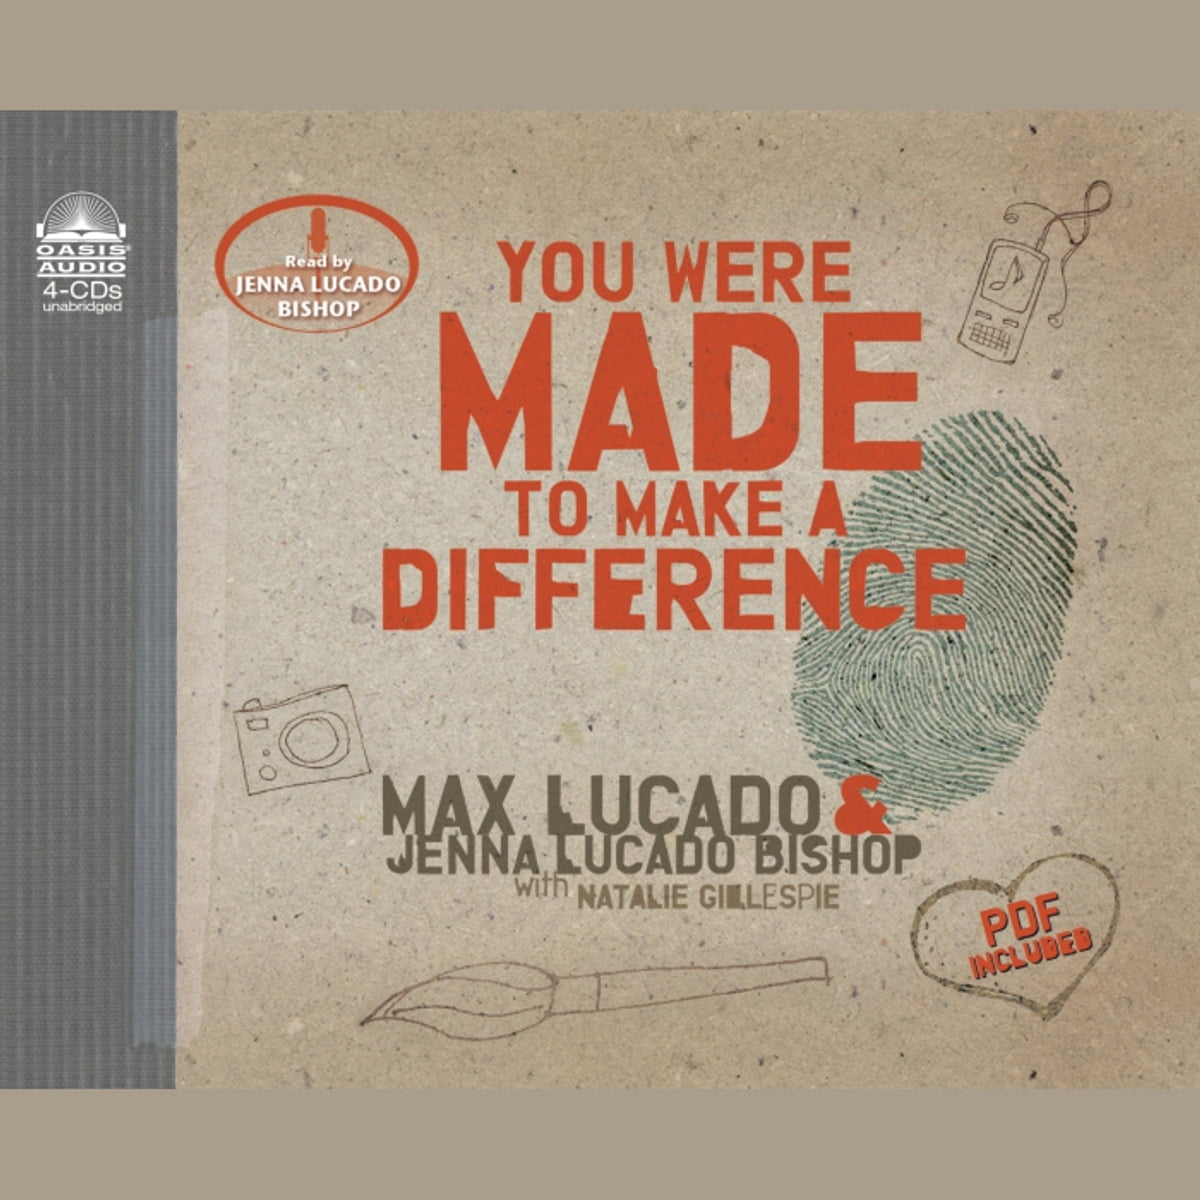 You Were Made to Make a Difference audiobook by Max Lucado - Rakuten Kobo